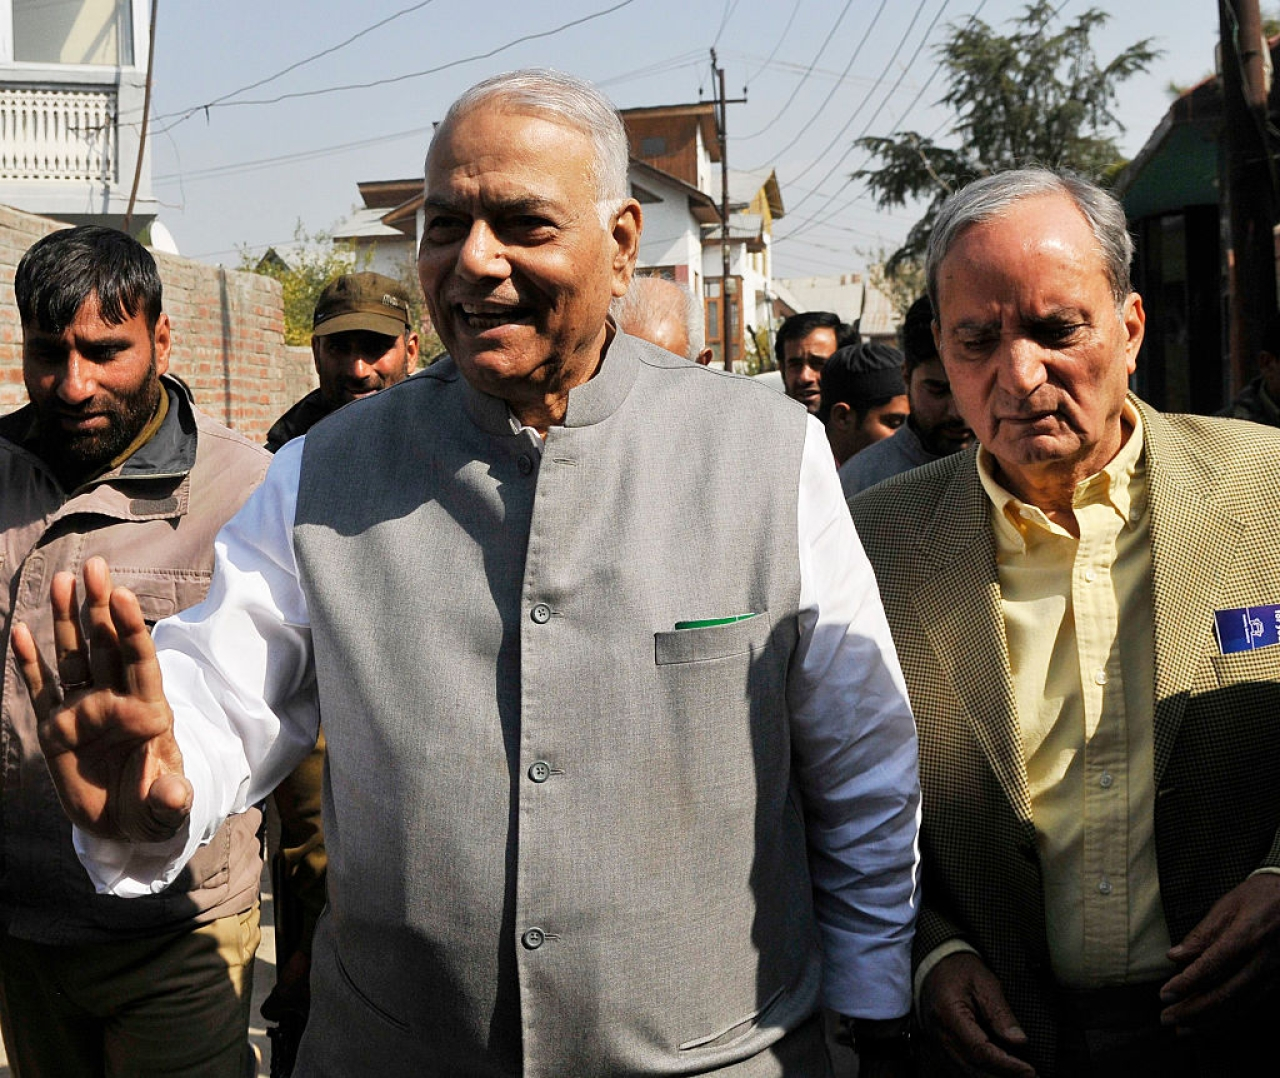 Yashwant Sinha during a 2016 visit to Srinagar, Kashmir. (Waseem Andrabi/Hindustan Times via GettyImages)